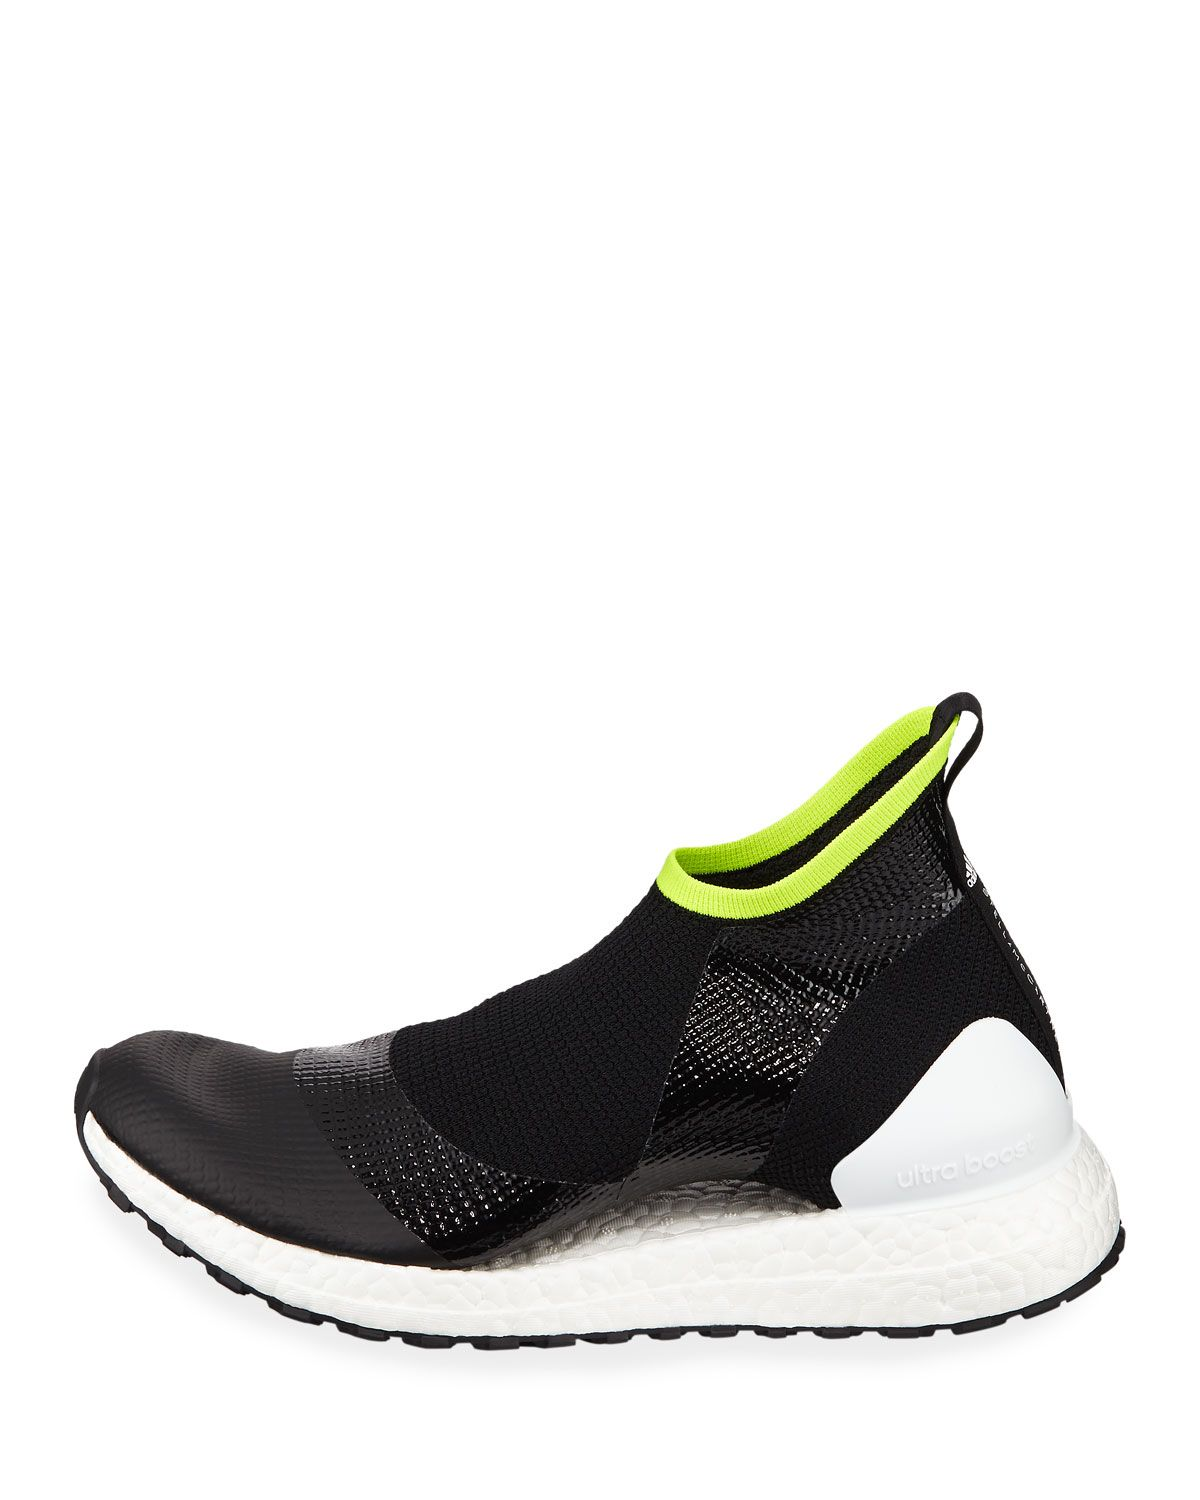 super popular 536ac 7fc4c adidas by Stella McCartney UltraBOOST X ATR Engineered Mesh ...